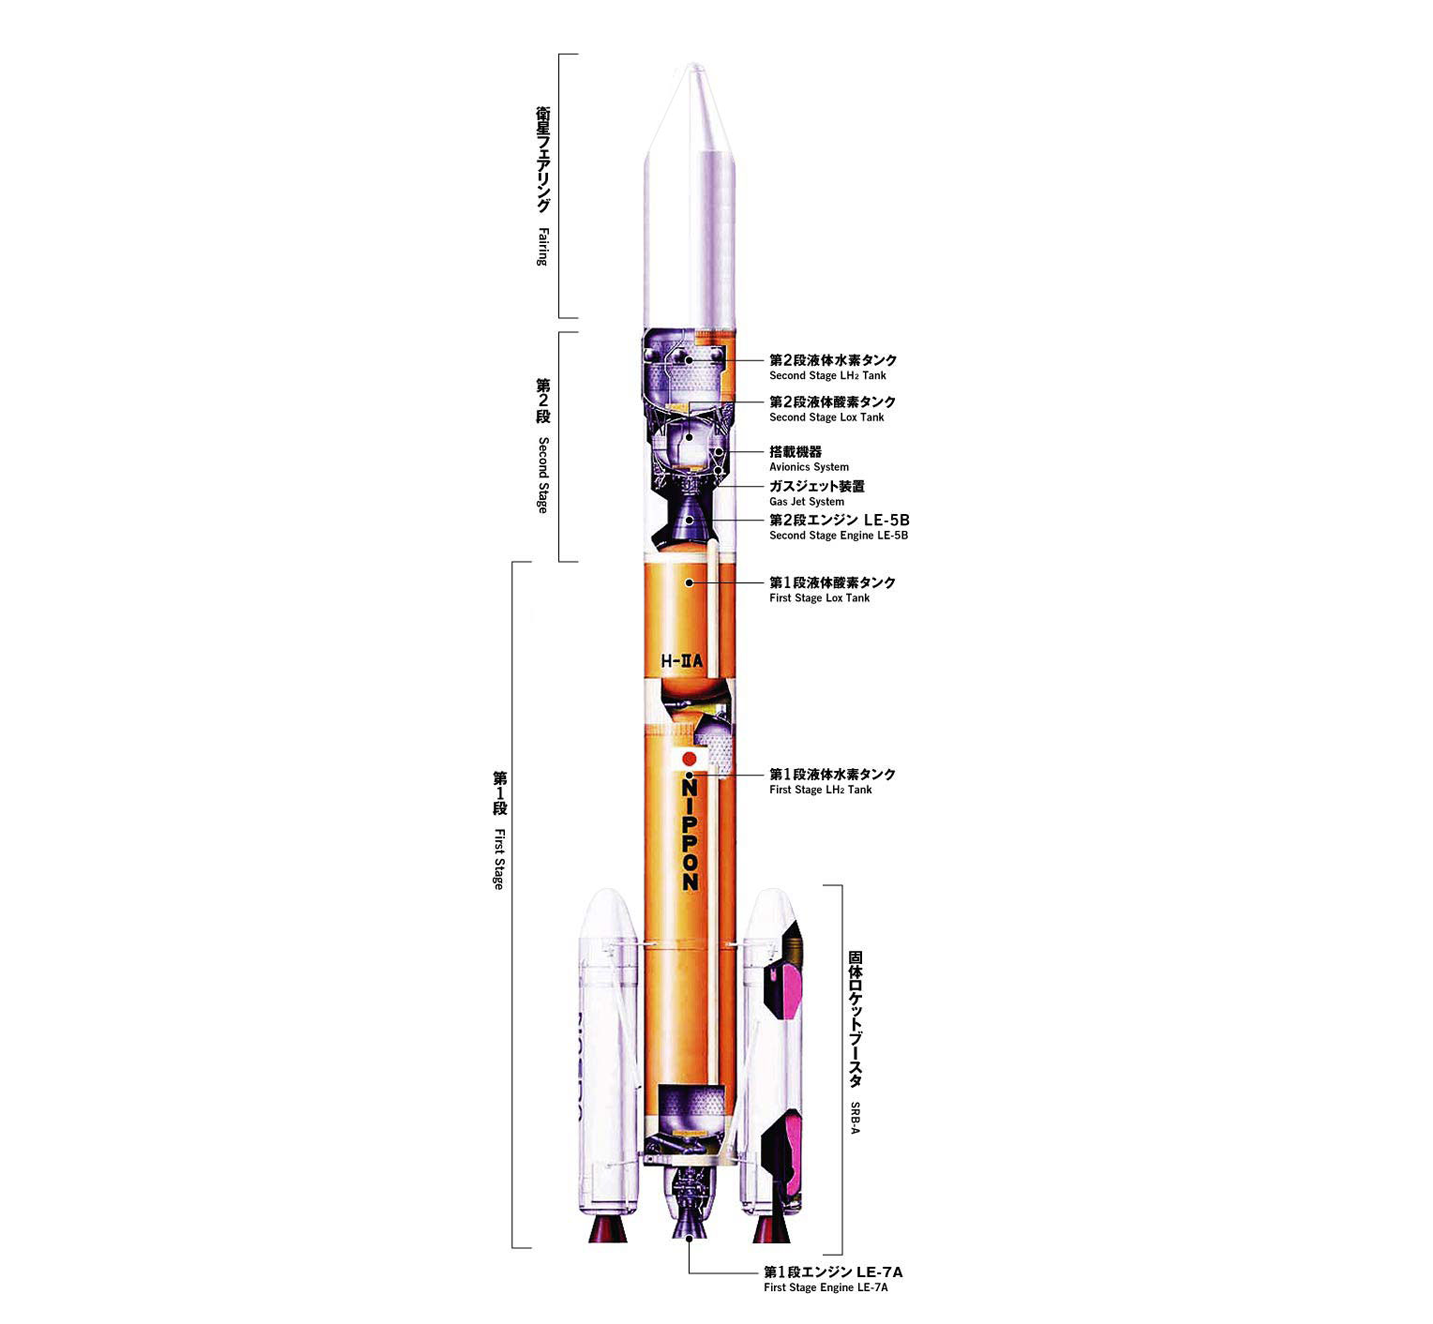 H-IIA Rocket No. 25 will be launched with Geostationary ...